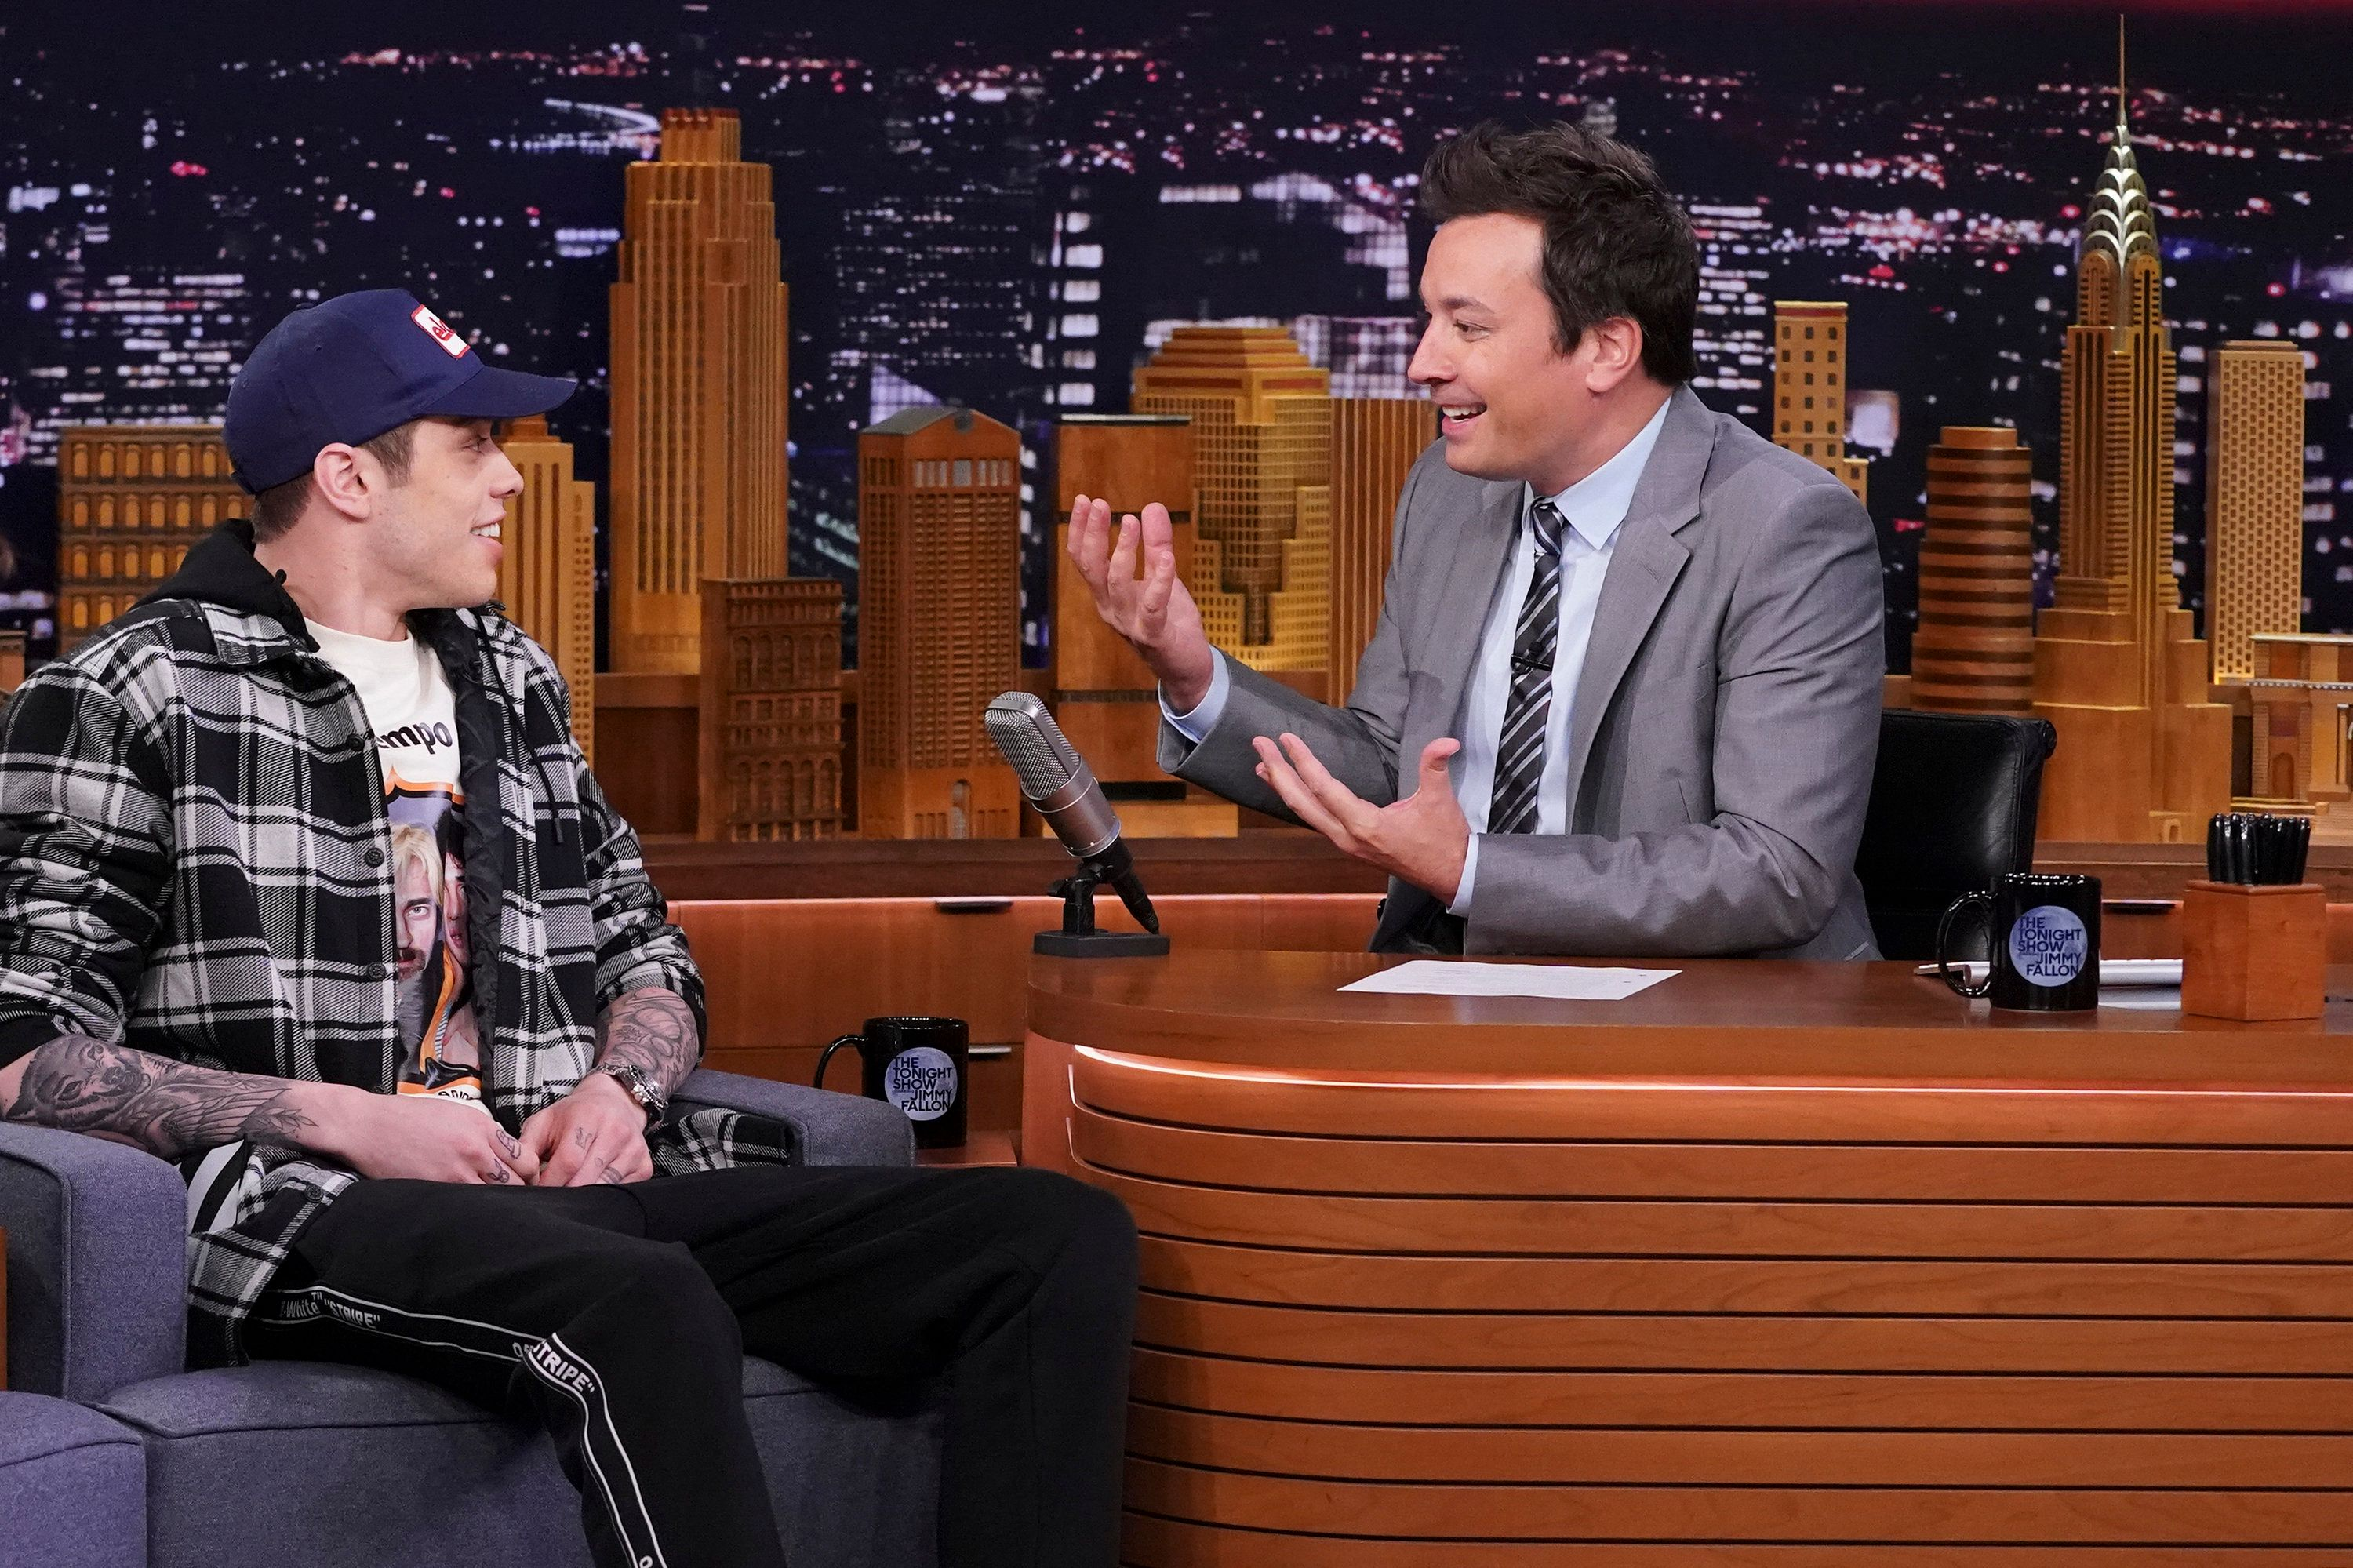 THE TONIGHT SHOW STARRING JIMMY FALLON -- Episode 0888 -- Pictured: (l-r) Comedian Pete Davidson during an interview with host Jimmy Fallon on June 20, 2018 -- (Photo by: Andrew Lipovsky/NBC/NBCU Photo Bank via Getty Images)